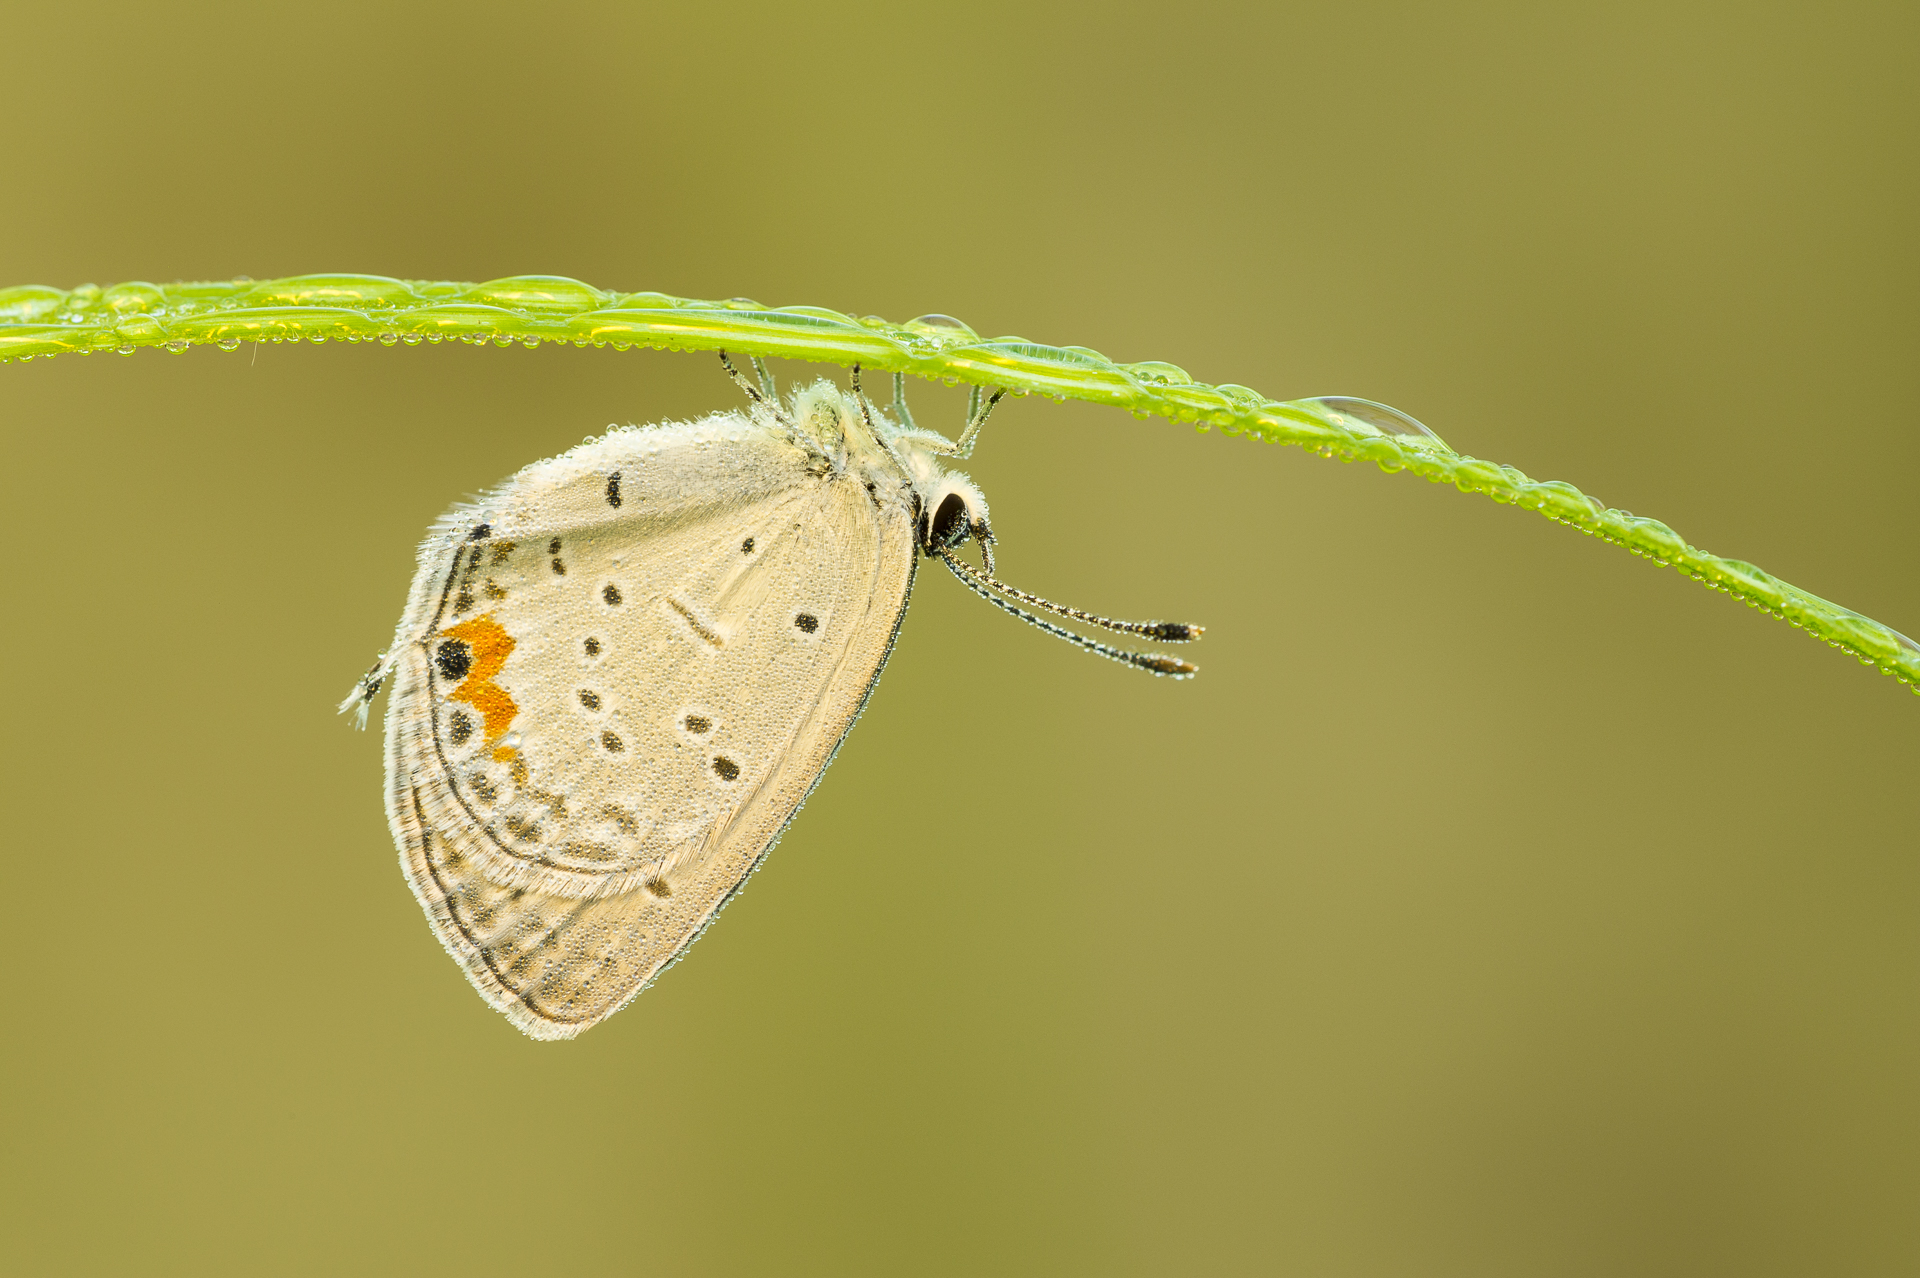 Eastern-tailed Blue butterfly resting underneath a dew-covered blade of grass